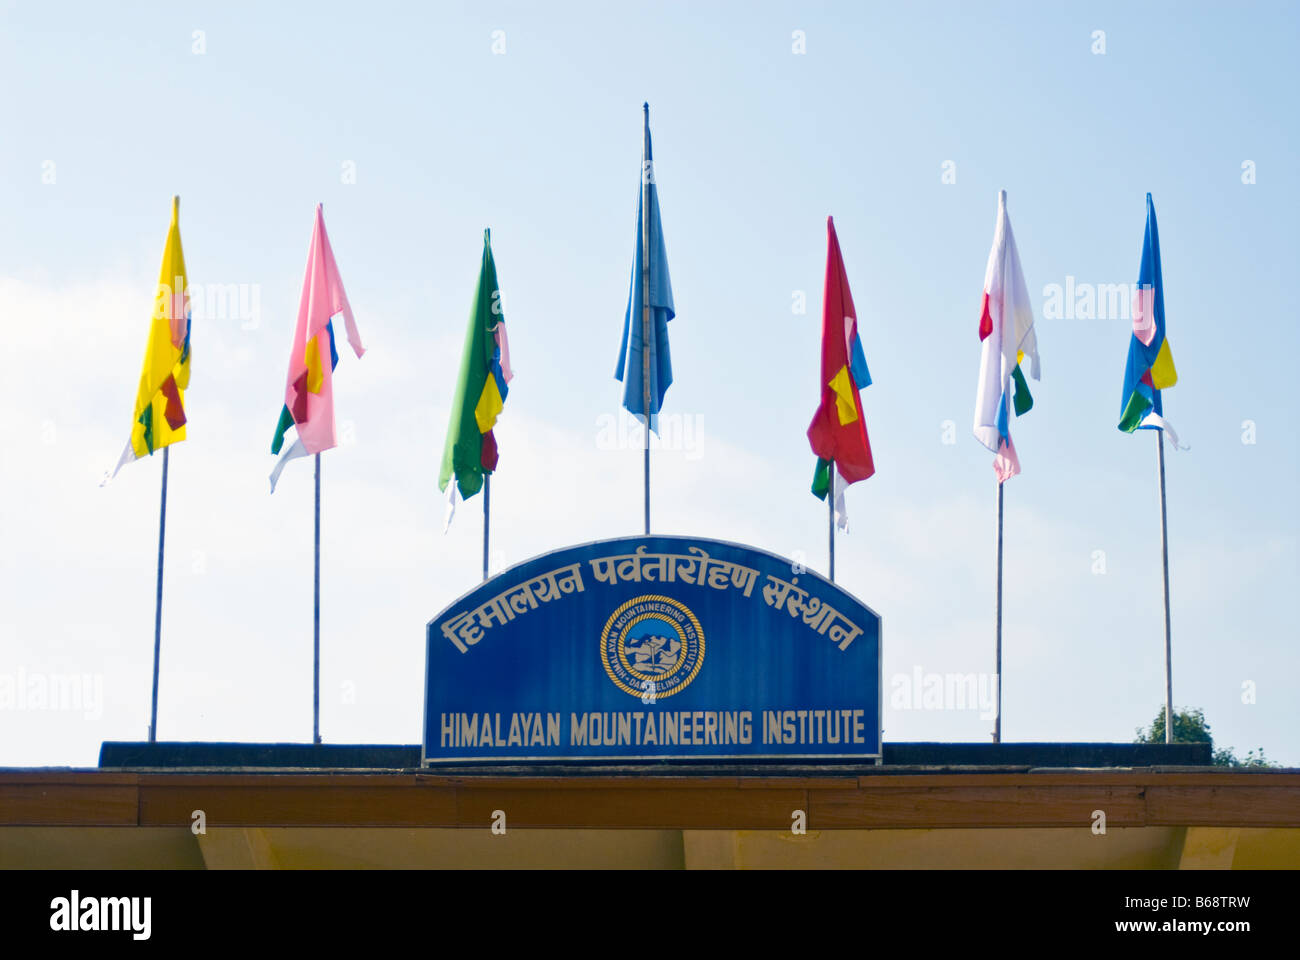 The Himalayan Mountaineering Institute, Darjeeling, West Bengal, India - Stock Image